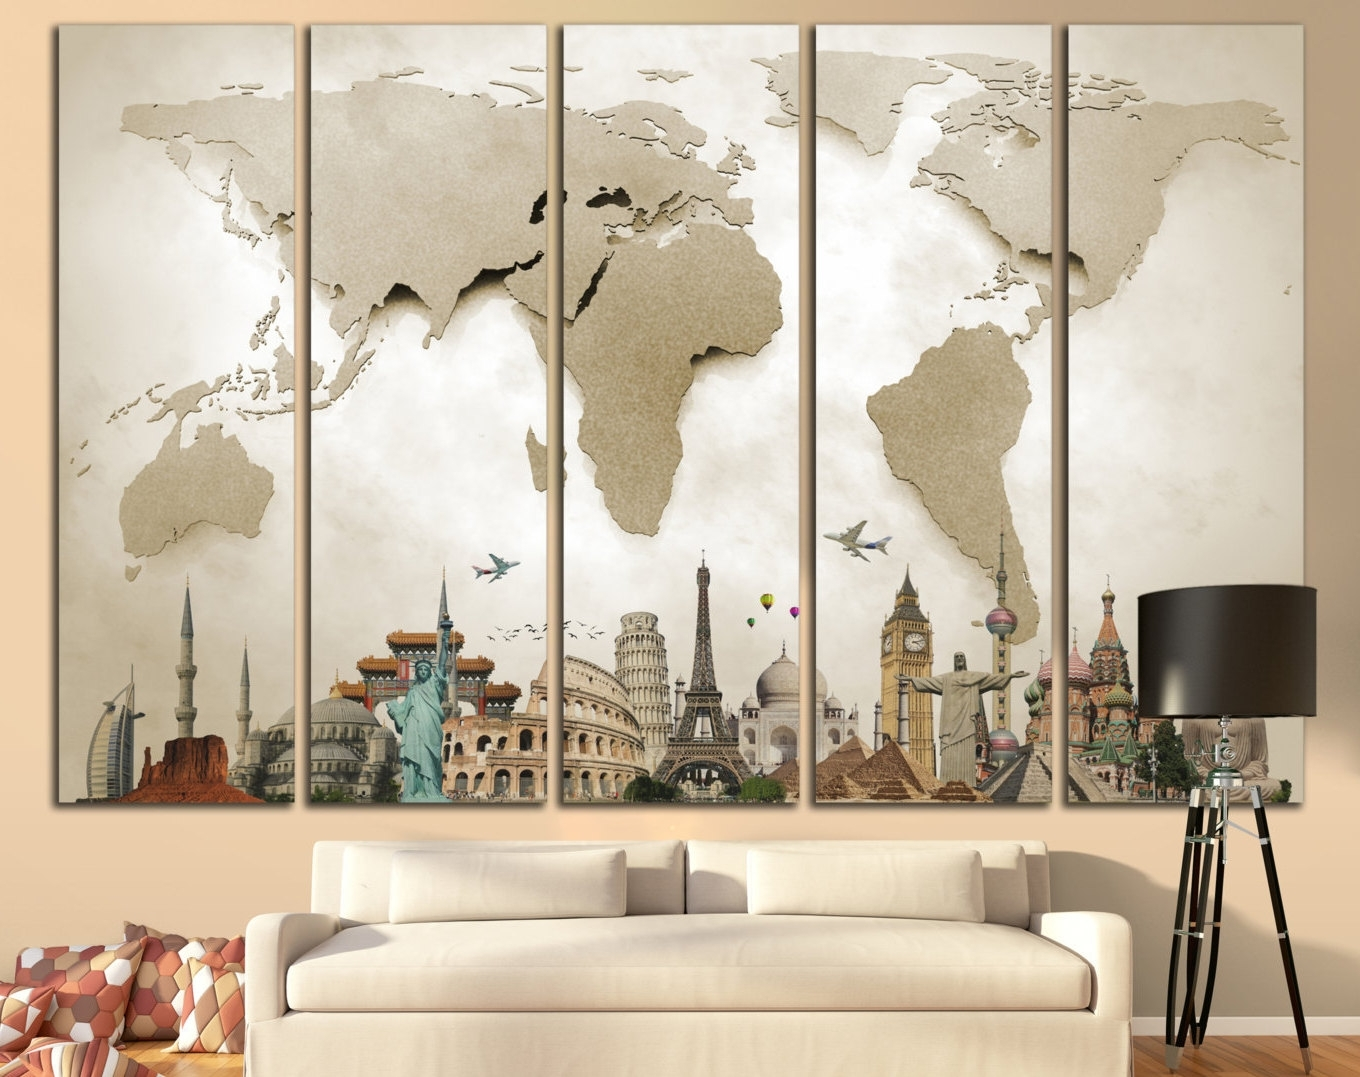 Popular Maps For Wall Art Inside Wall Art Designs: Large Wall Art World Map Large Print Beige World (View 7 of 15)